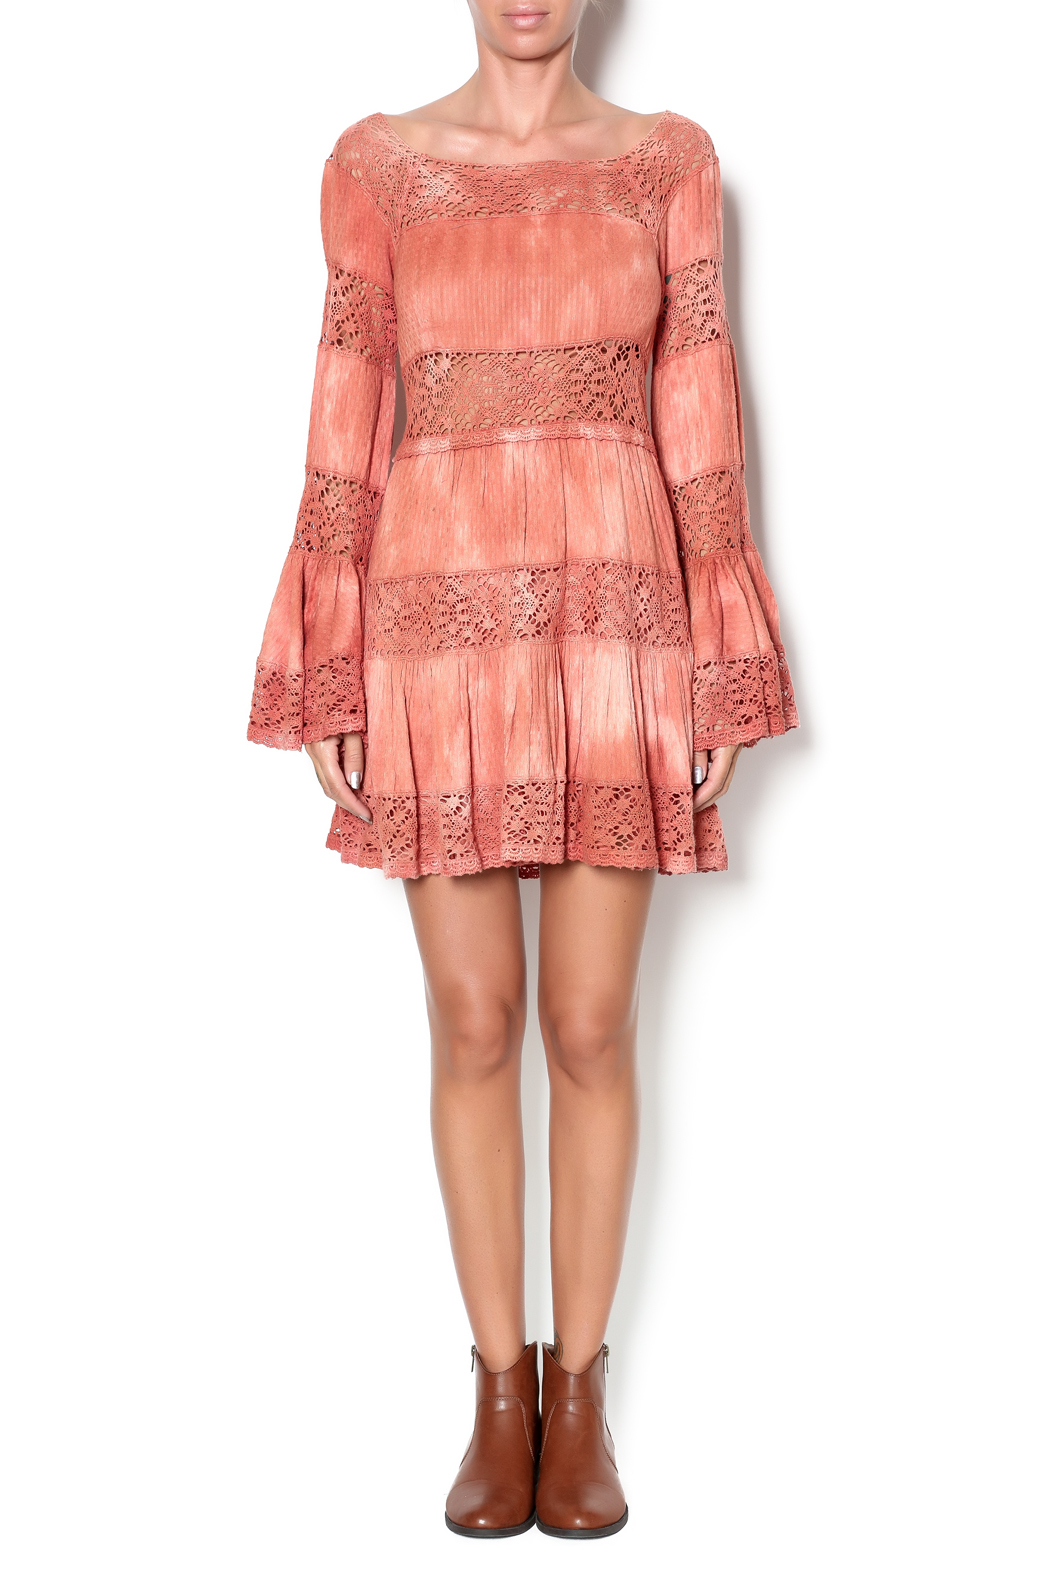 Free People Sunrise Crochet Dress - Front Full Image